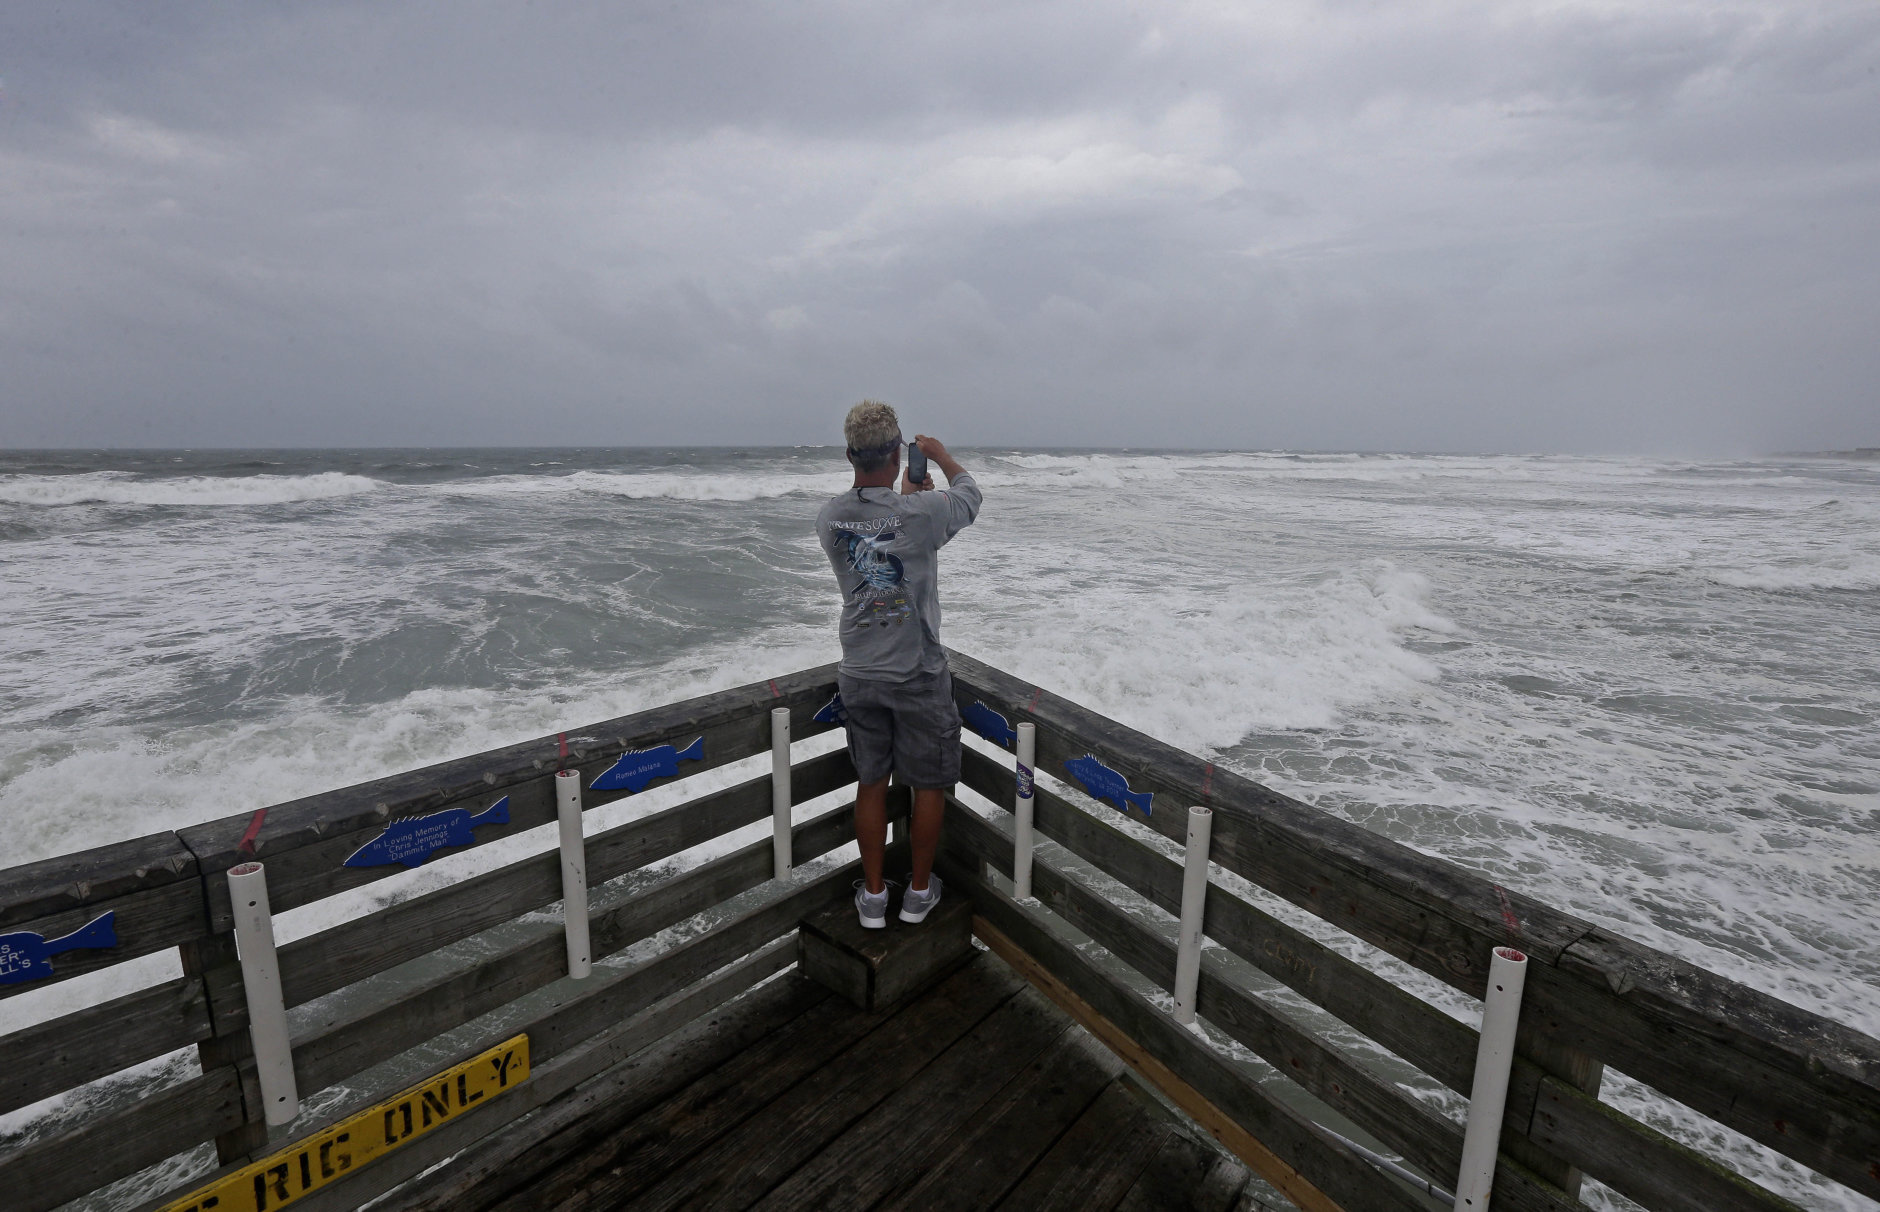 Patrick Wells looks out over the Atlantic ocean at the Avalon Fishing Pier in Kill Devil Hills, N.C., Thursday, Sept. 13, 2018 as Hurricane Florence approaches the east coast. (AP Photo/Gerry Broome)